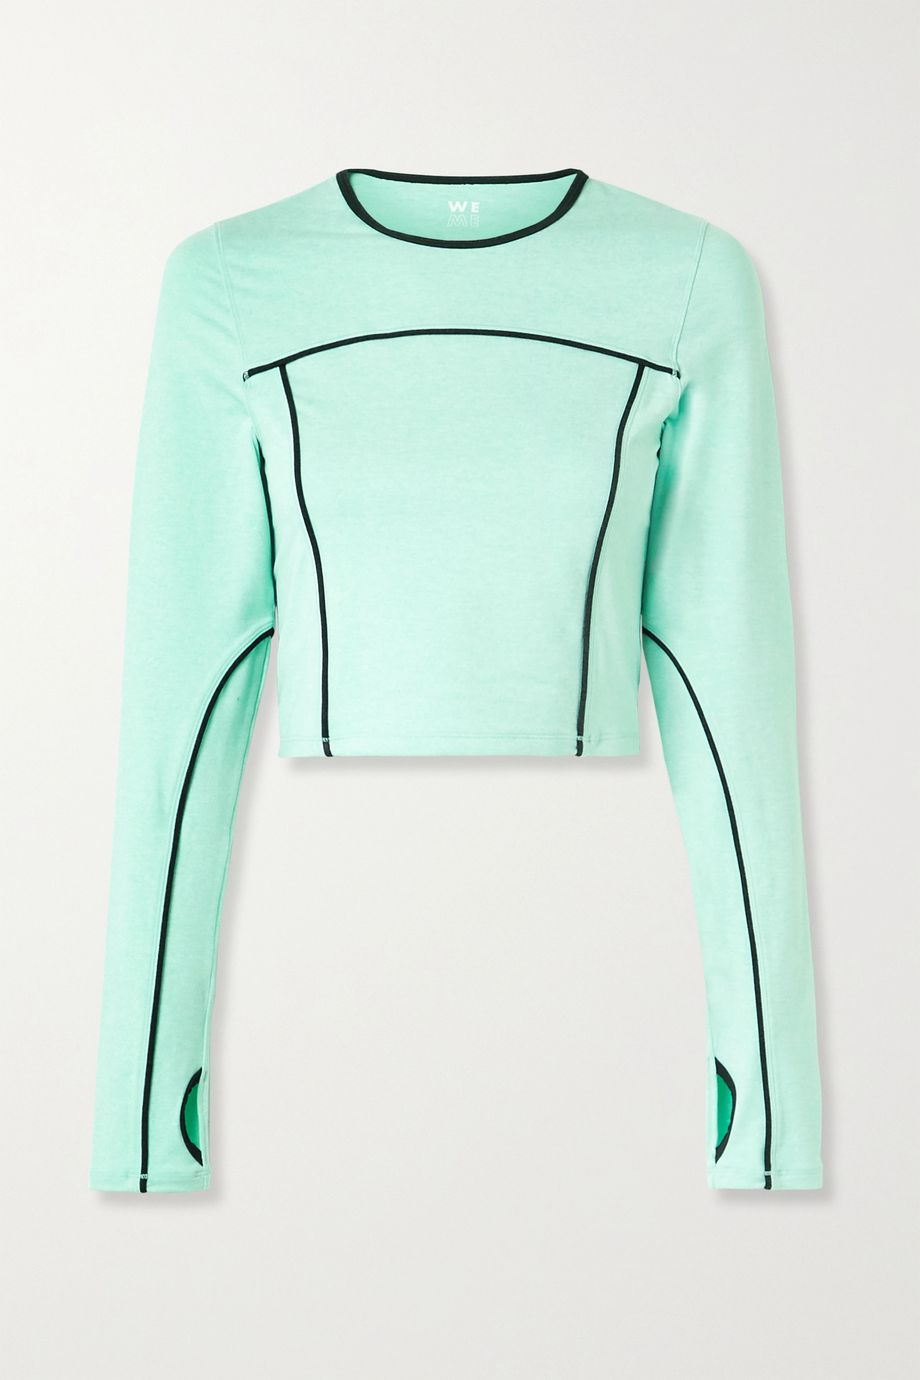 We Over Me Lotus cropped cutout stretch-jersey top